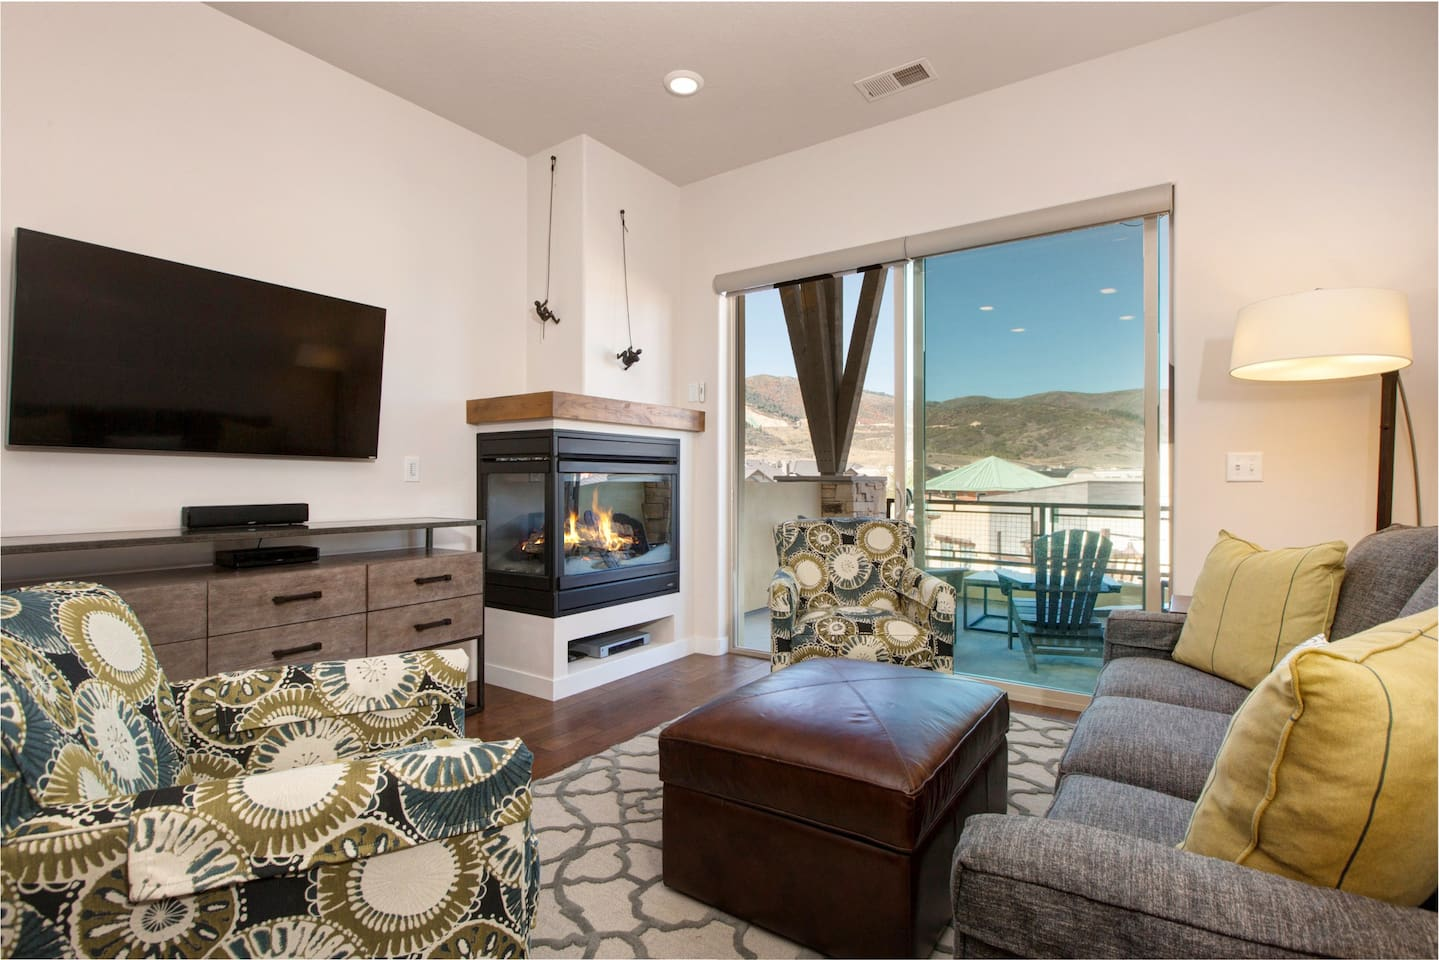 Welcome to Park City! This condo is professionally managed by TurnKey Vacation Rentals.